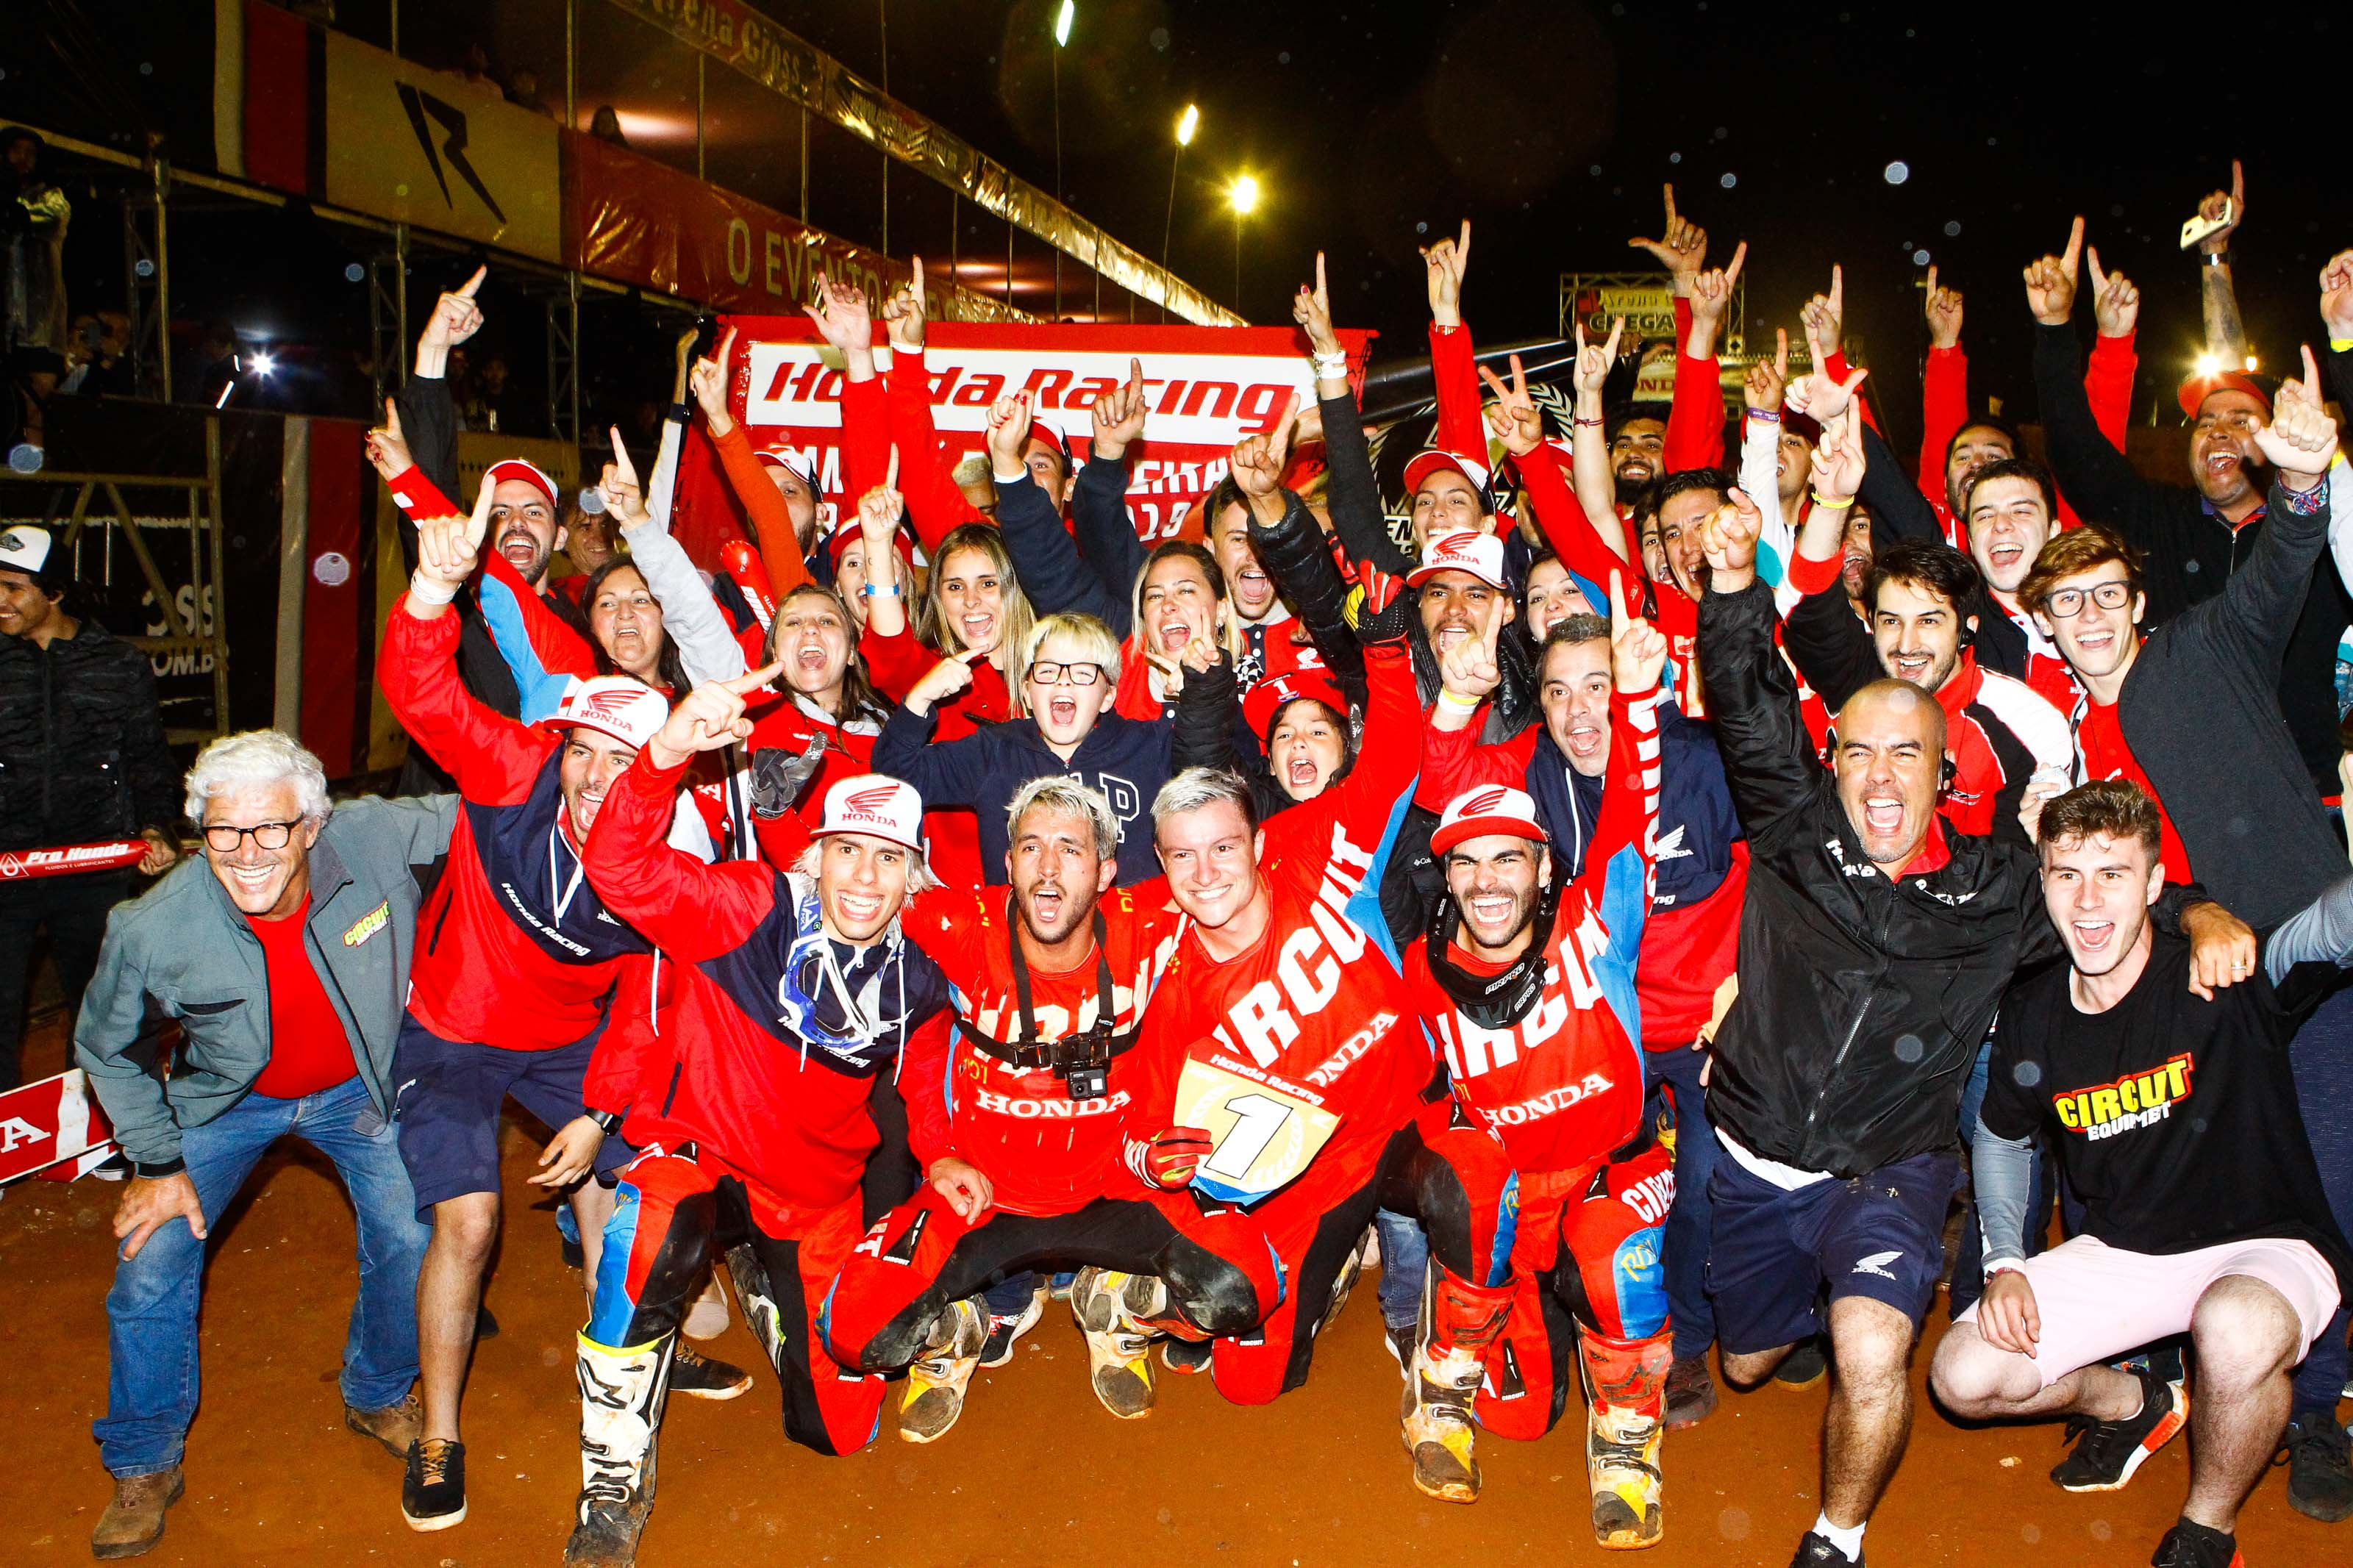 Equipe Honda Racing é a grande campeã do Arena Cross 2019